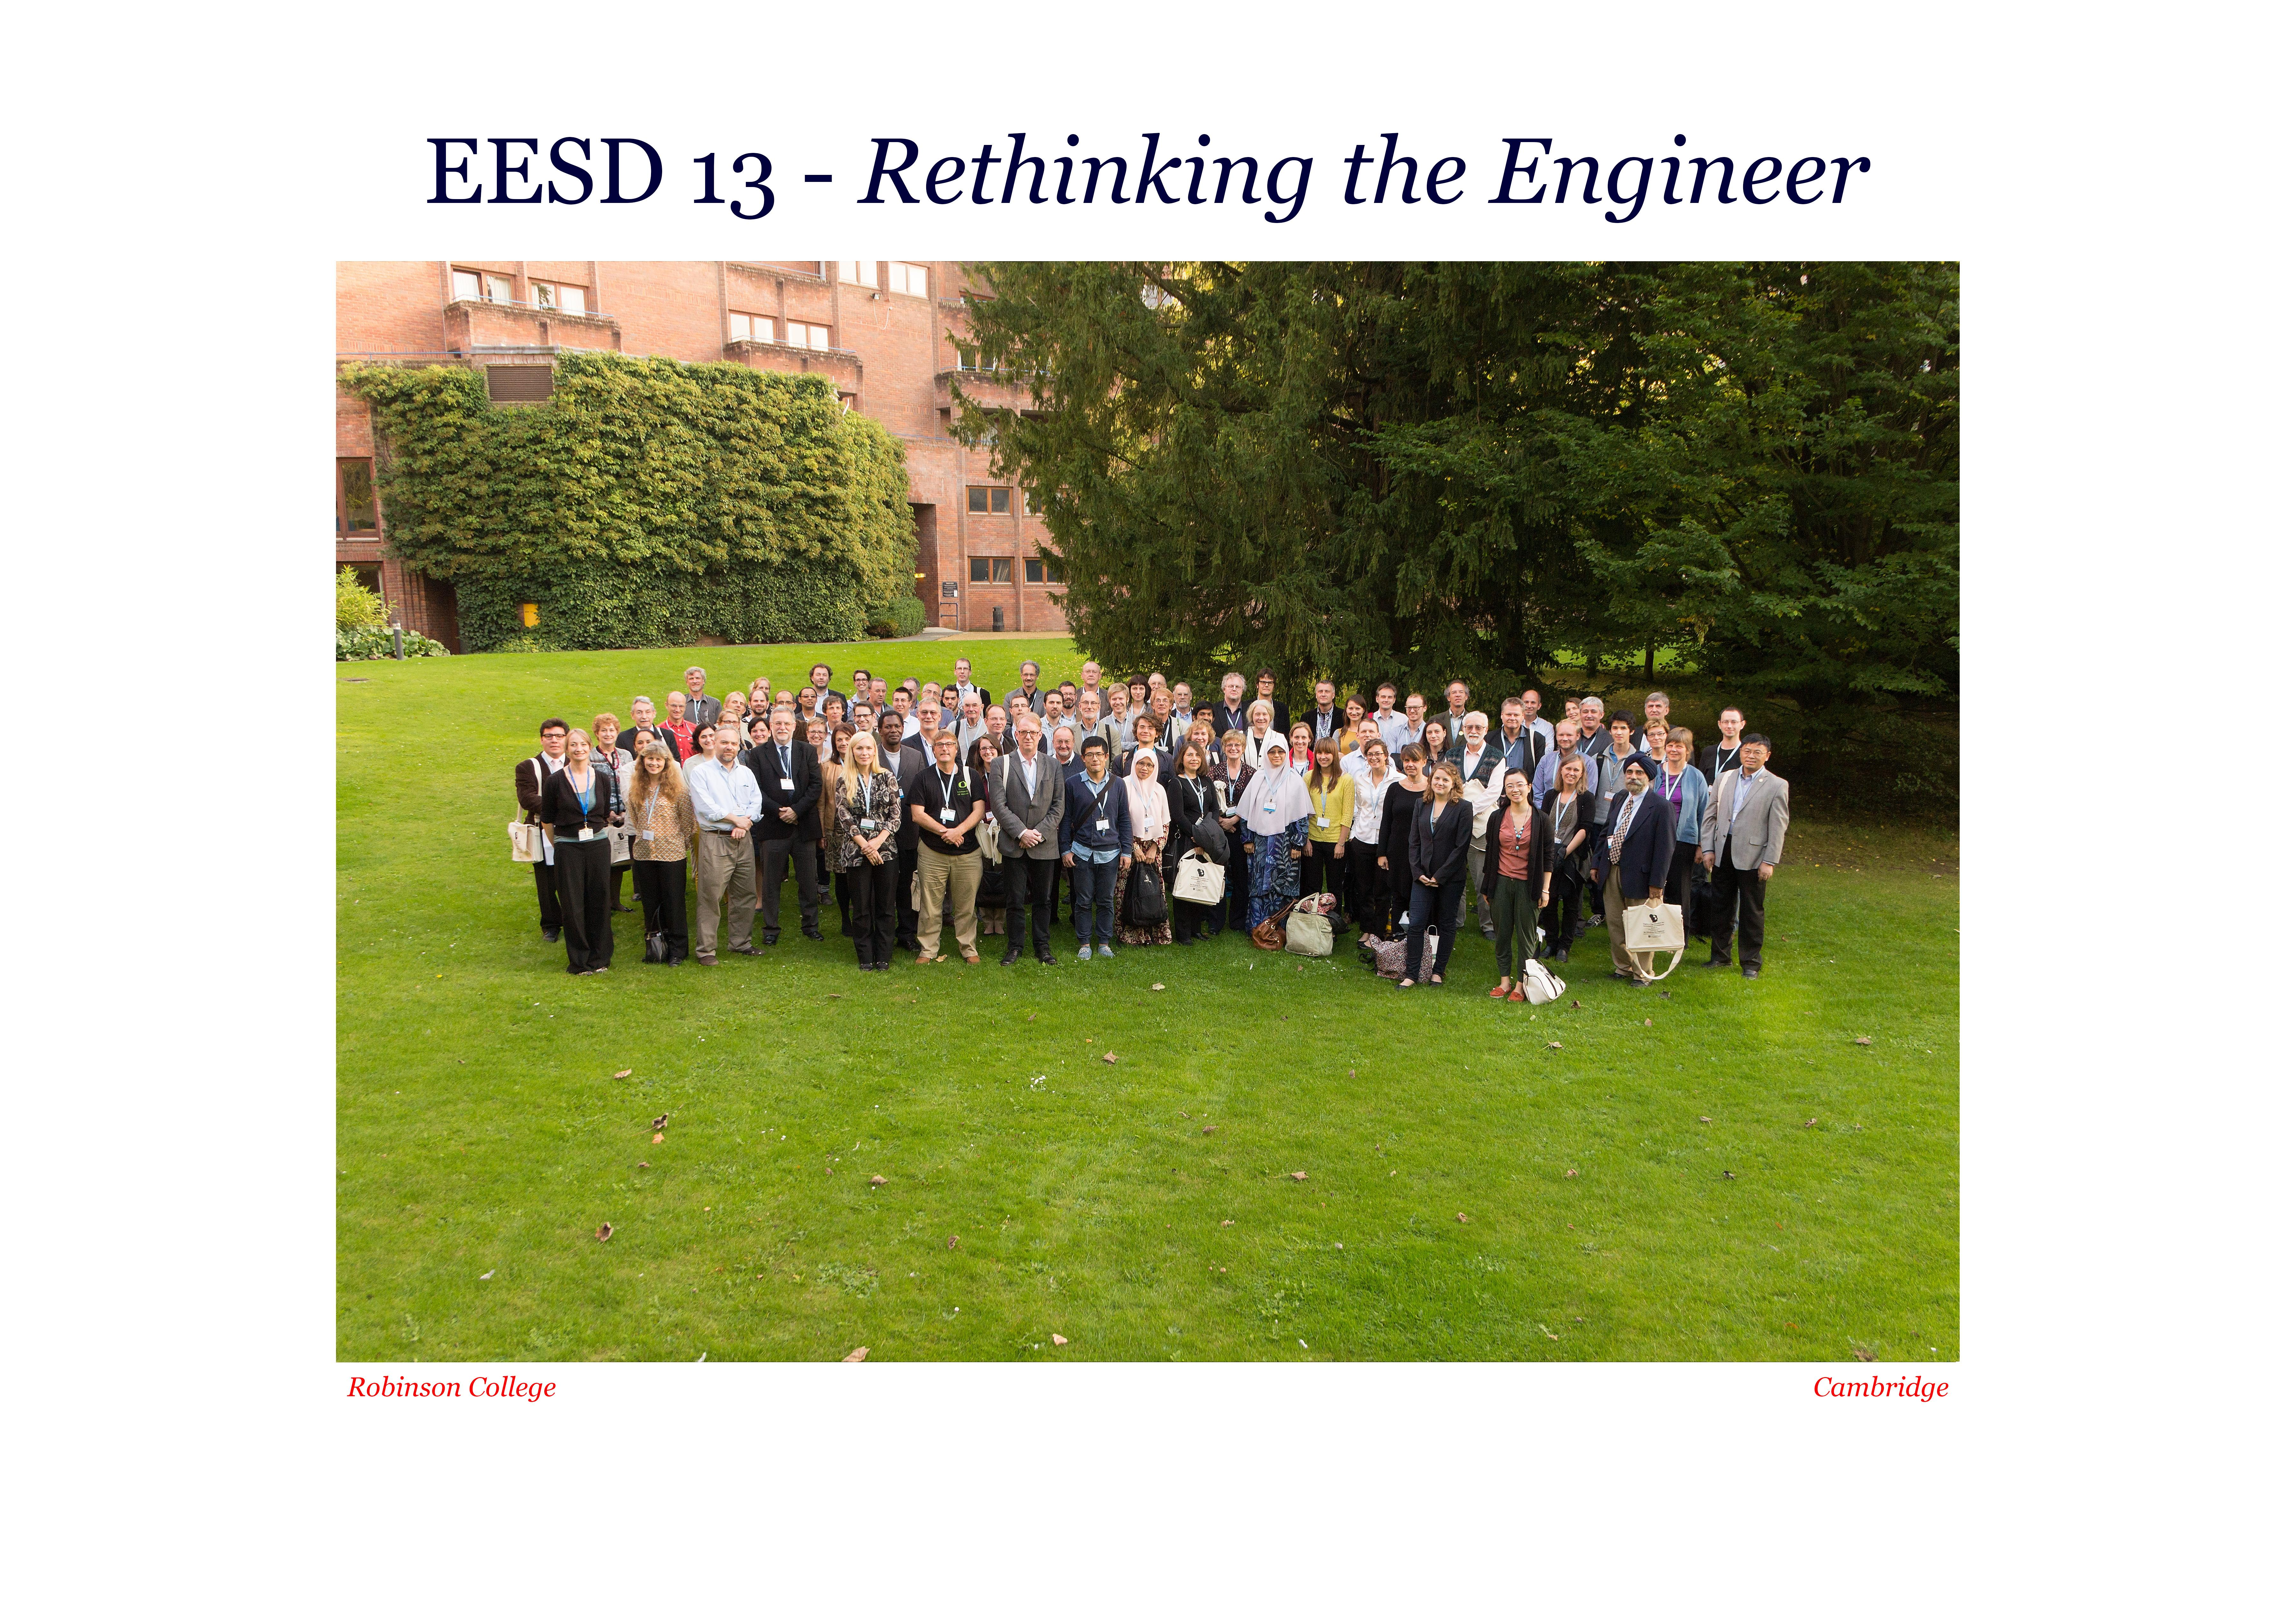 6th International Conference in Engineering Education for Sustainable Development (EESD13)